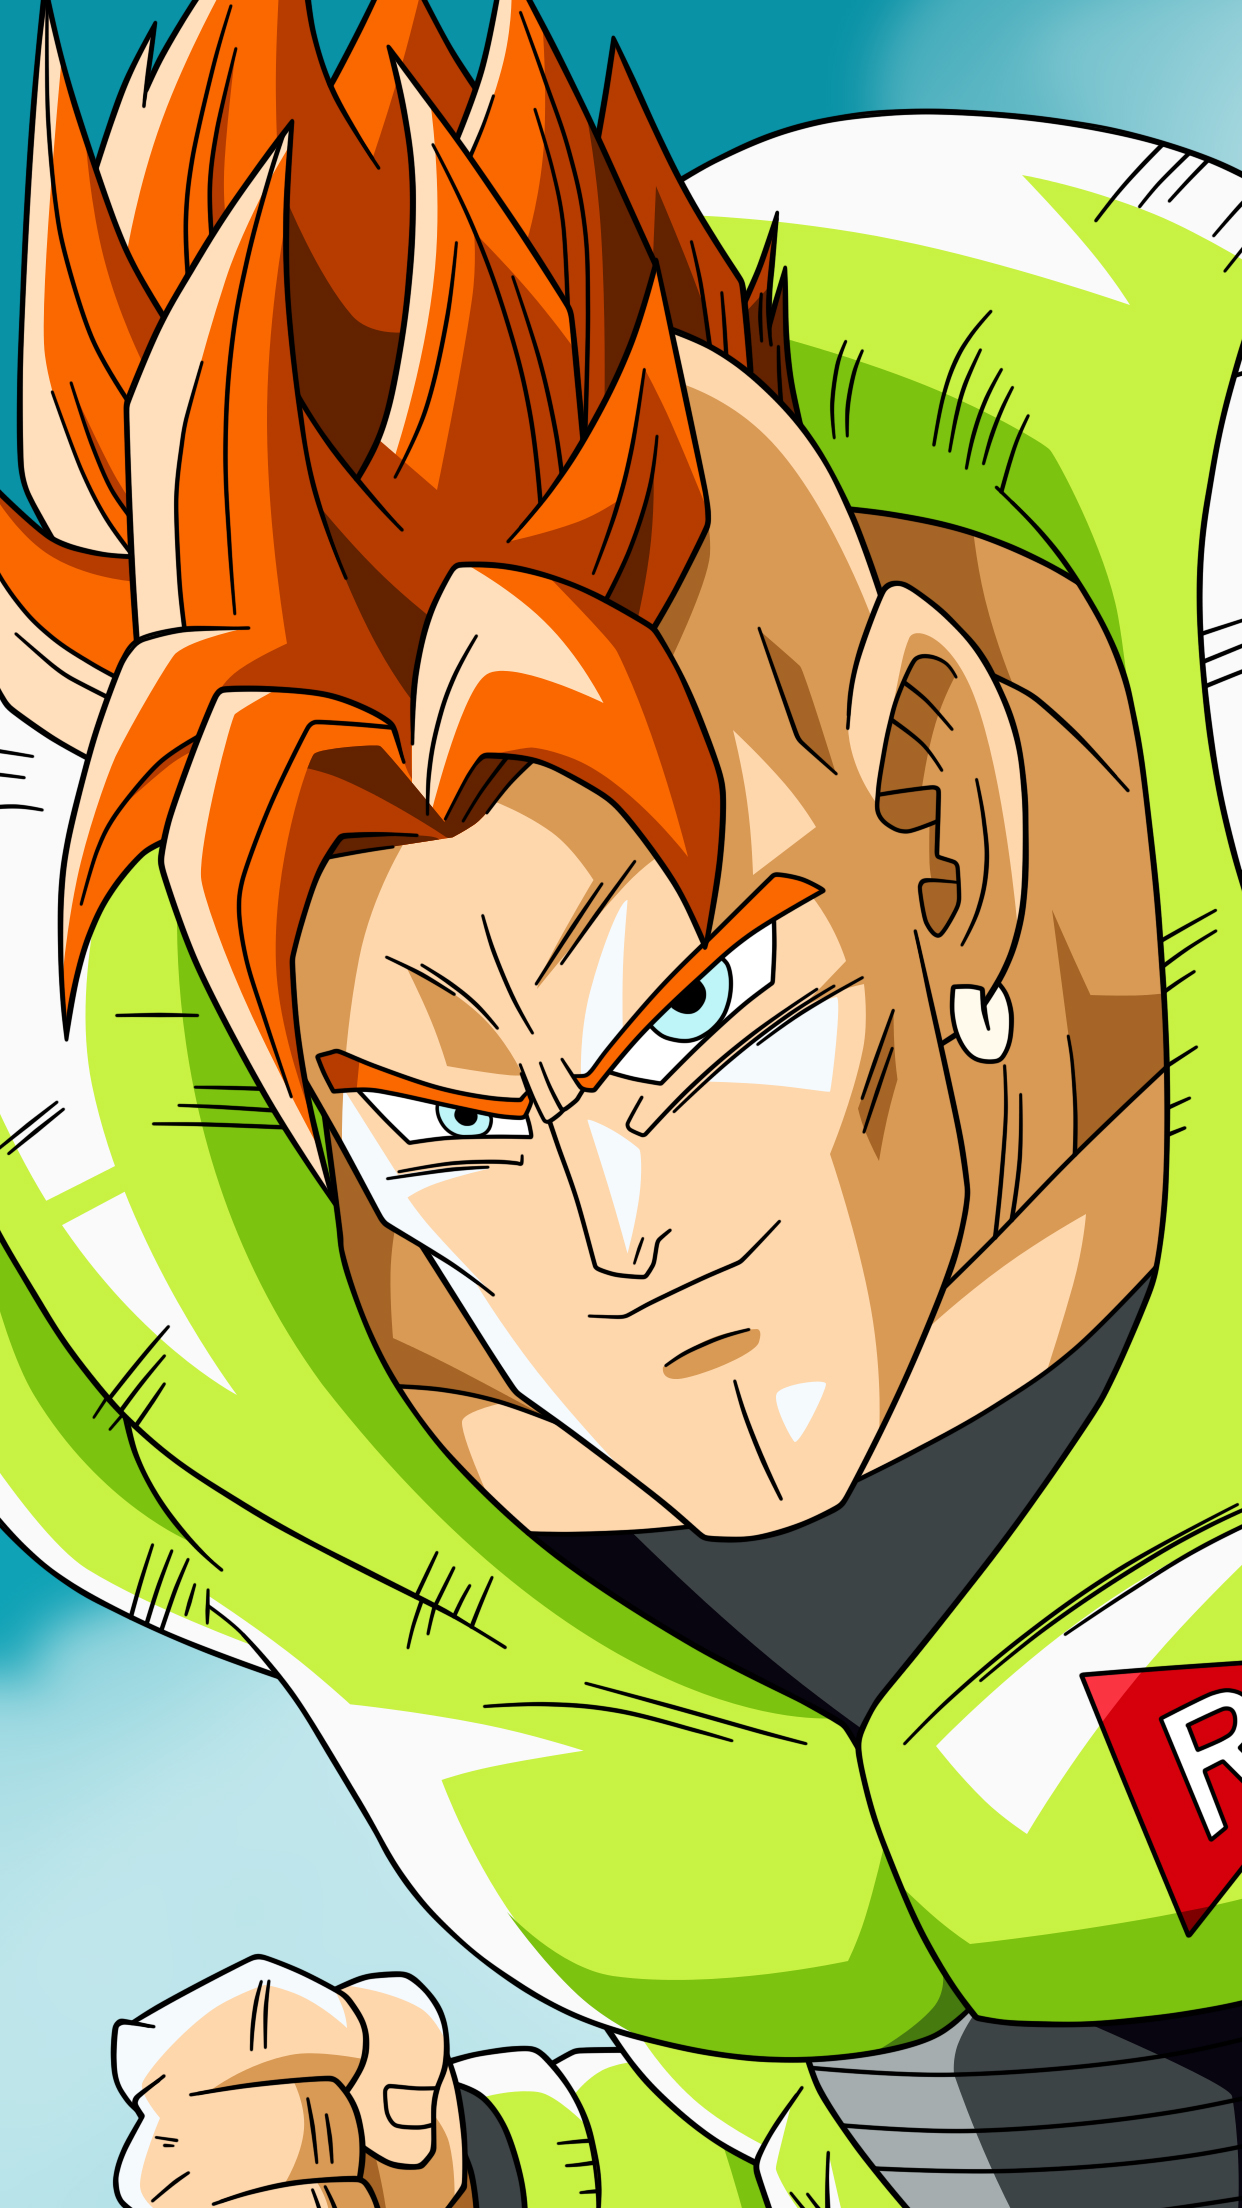 Dragon Ball C-16 Wallpaper for iPhone X, 8, 7, 6 - Free